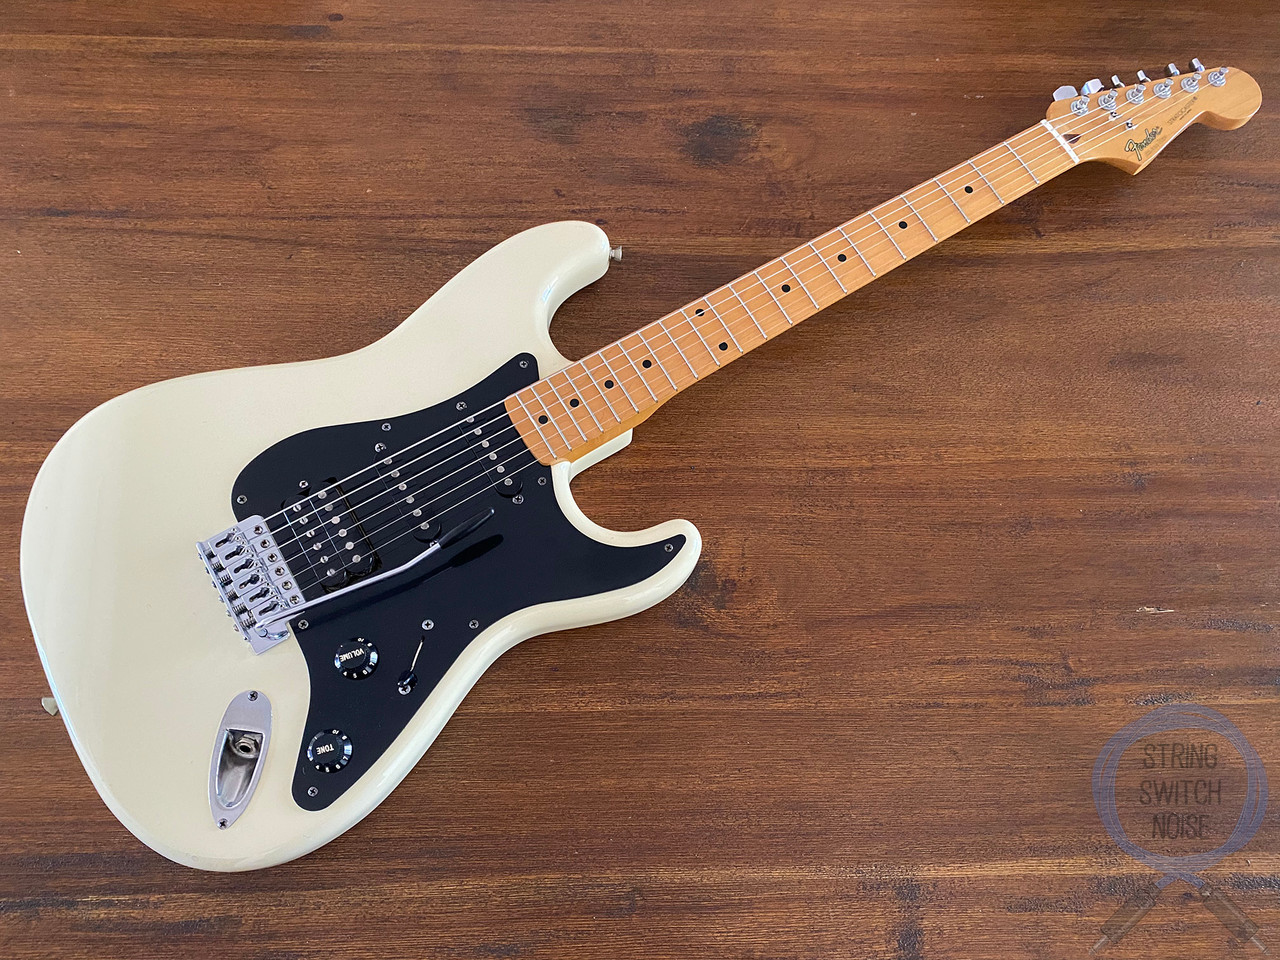 Fender Stratocaster, BOXER, White, HSS, 1984, Excellent Condition